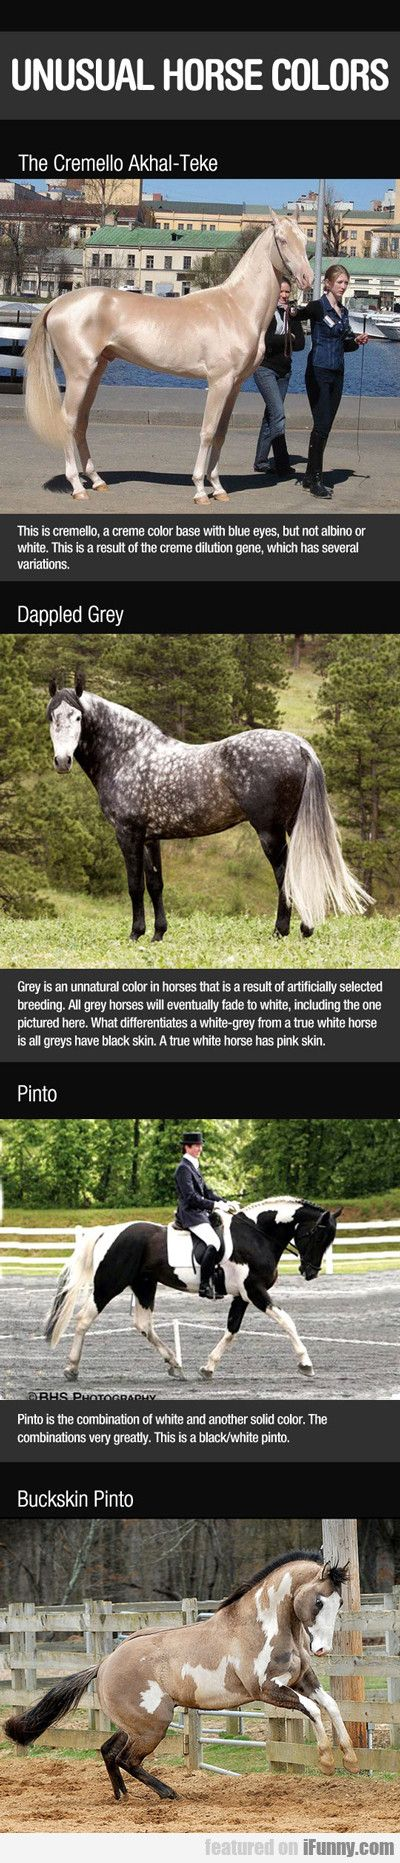 Unusual Horse Colors. I want the Cremello